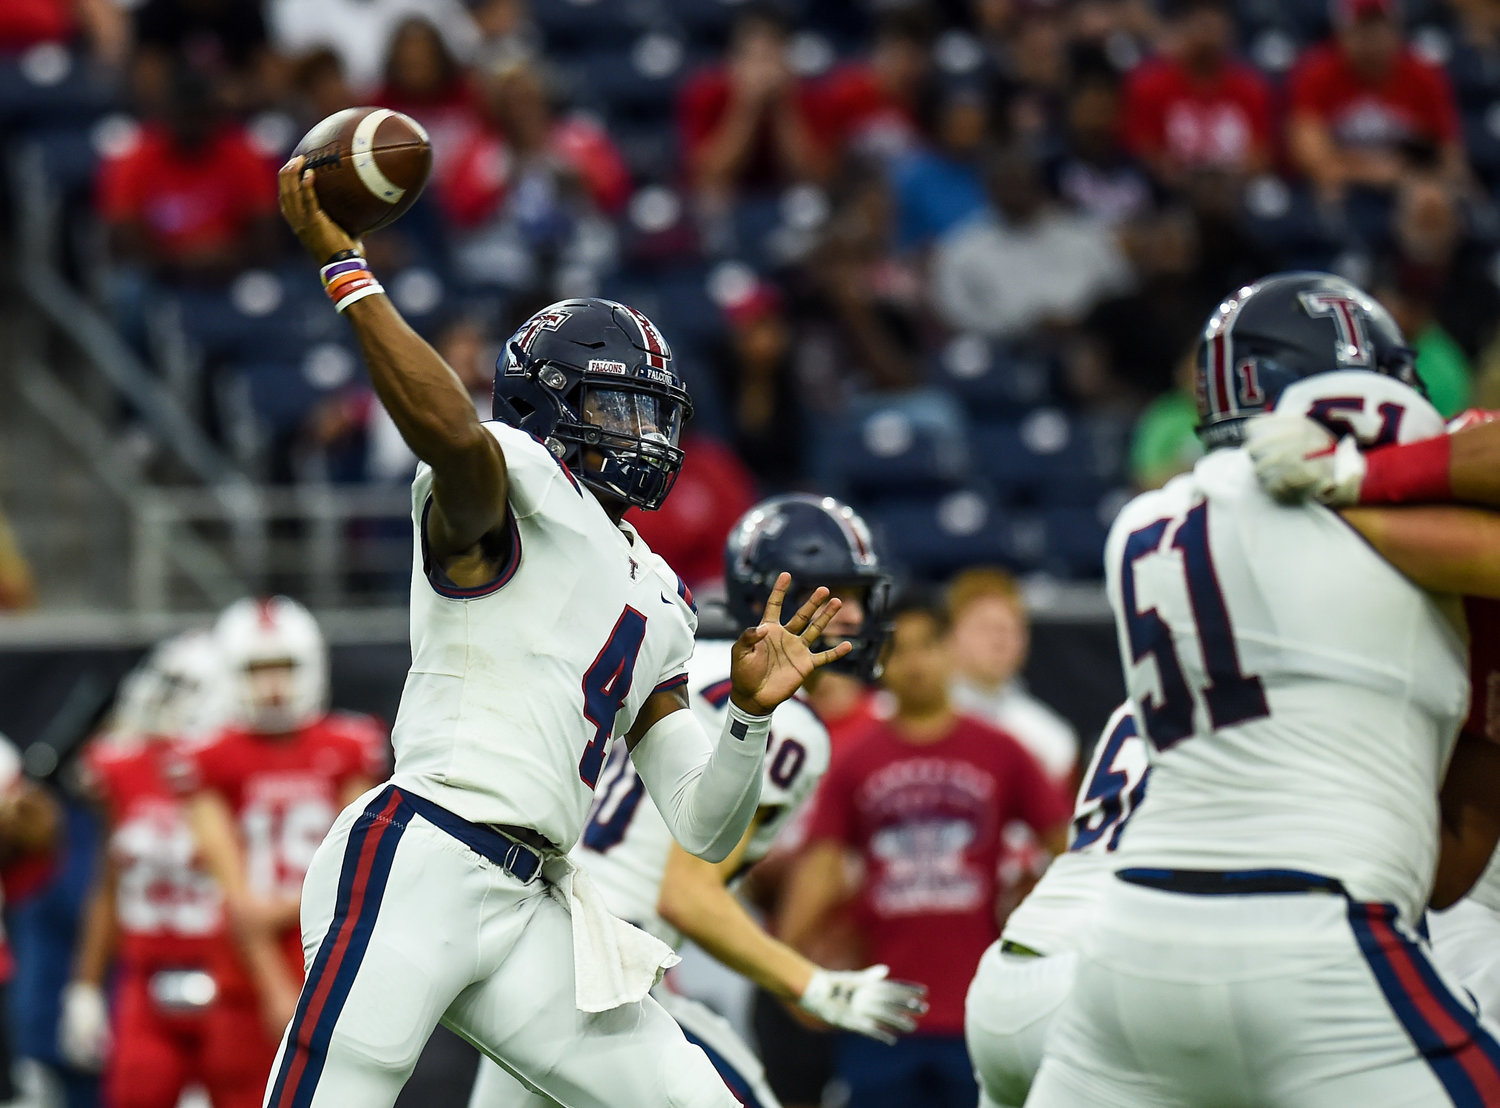 Houston, Tx. Nov. 30, 2019: Tompkins QB Jalen Milroe (4) delivers a pass during the regional playoff game between Tompkins Falcons and Atascocita Eagles at NRG Stadium in Houston. (Photo by Mark Goodman / Katy Times)